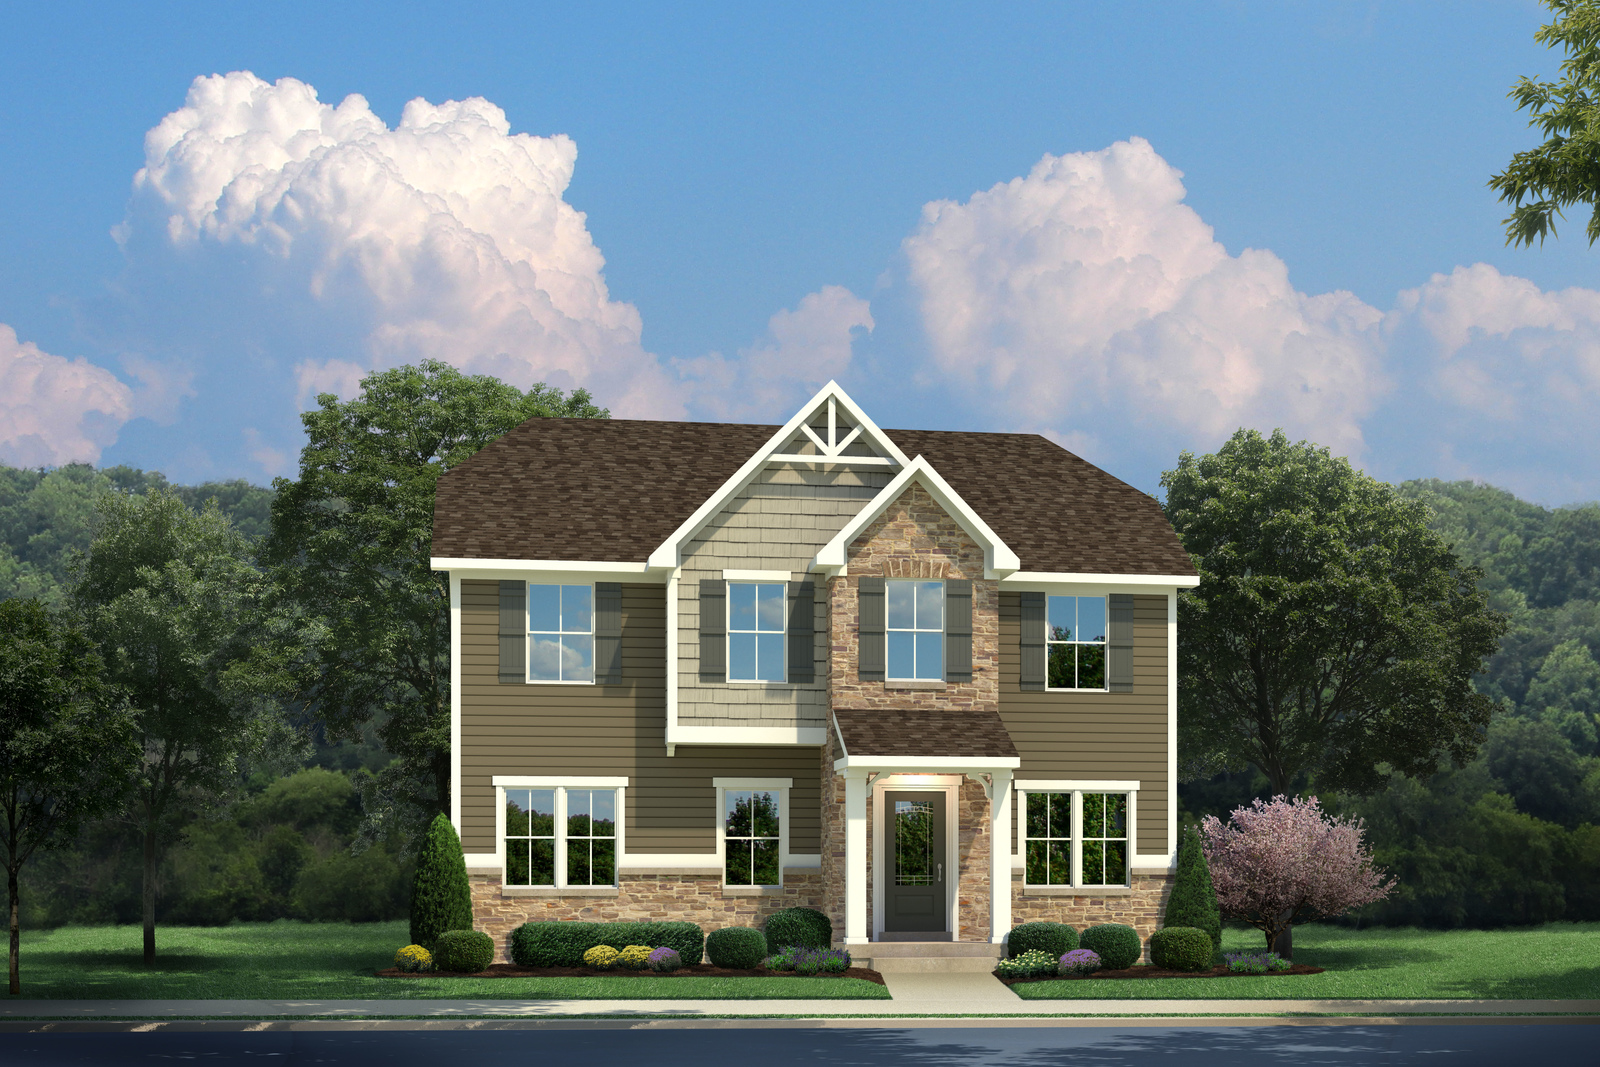 New sewickley home model for sale heartland homes for Heartland homes pittsburgh floor plans